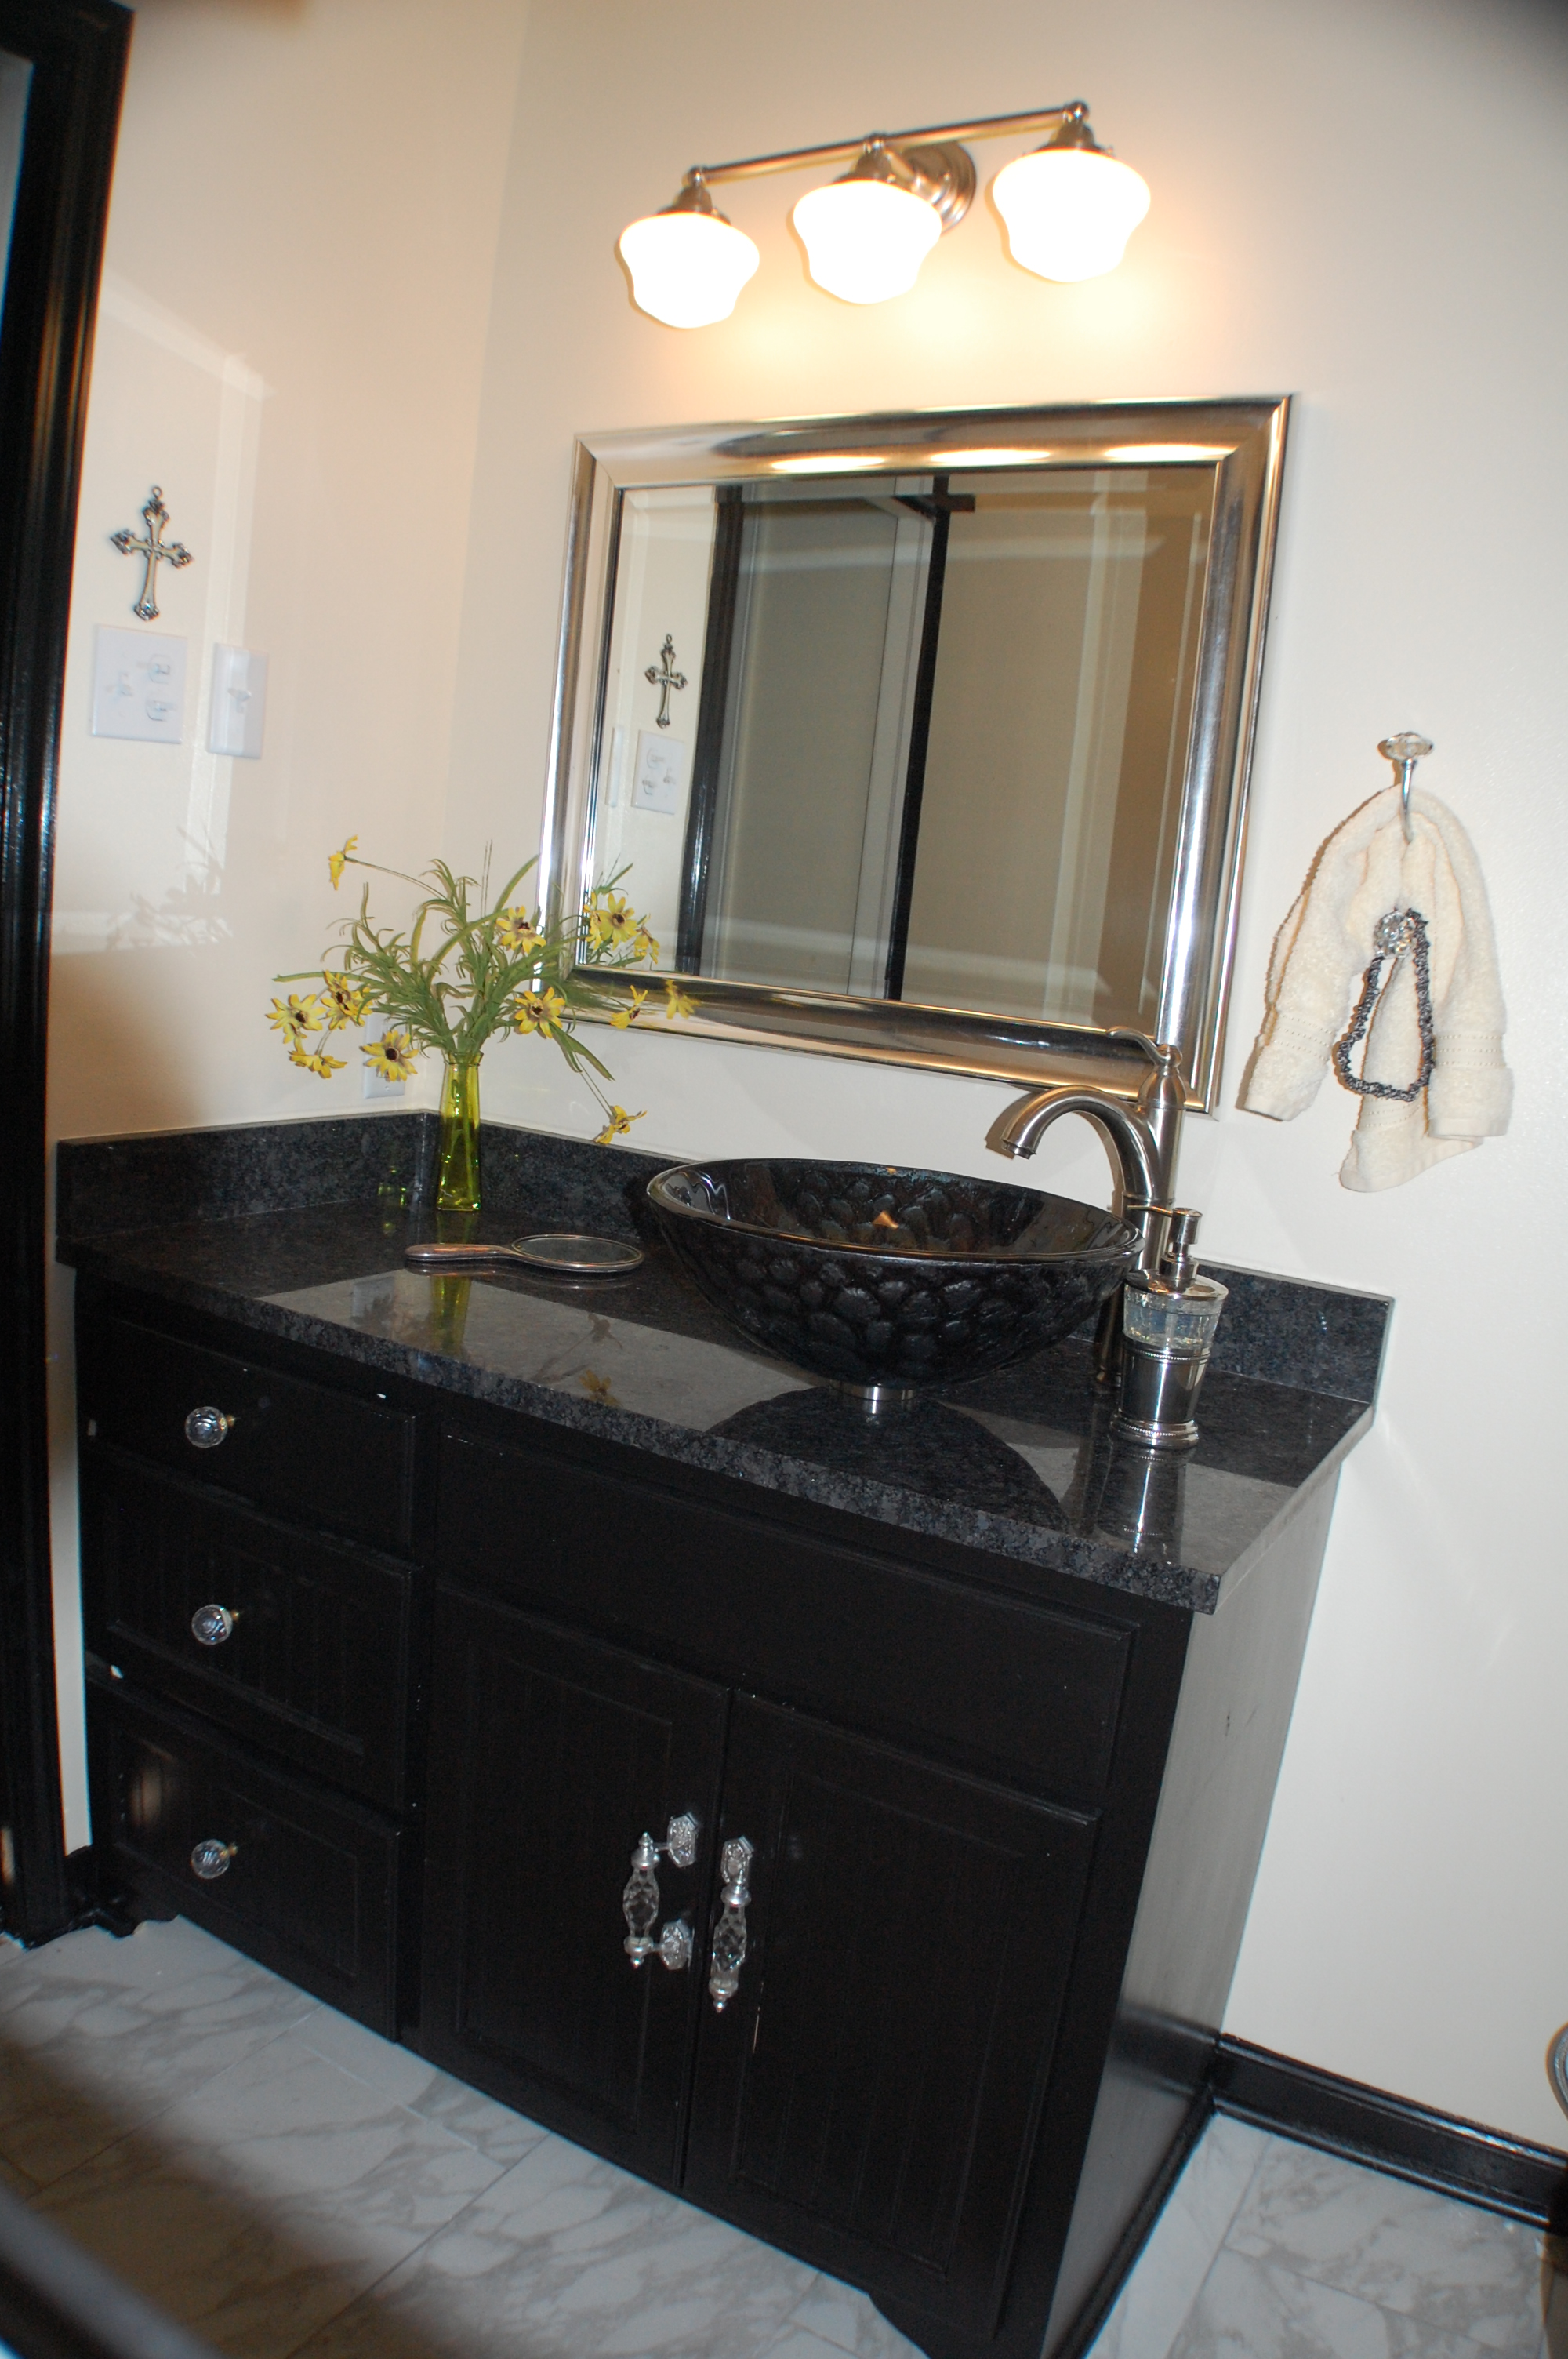 Bathroom Remodeling Baton Rouge westminster master bath and hall bath renovation - zitro construction